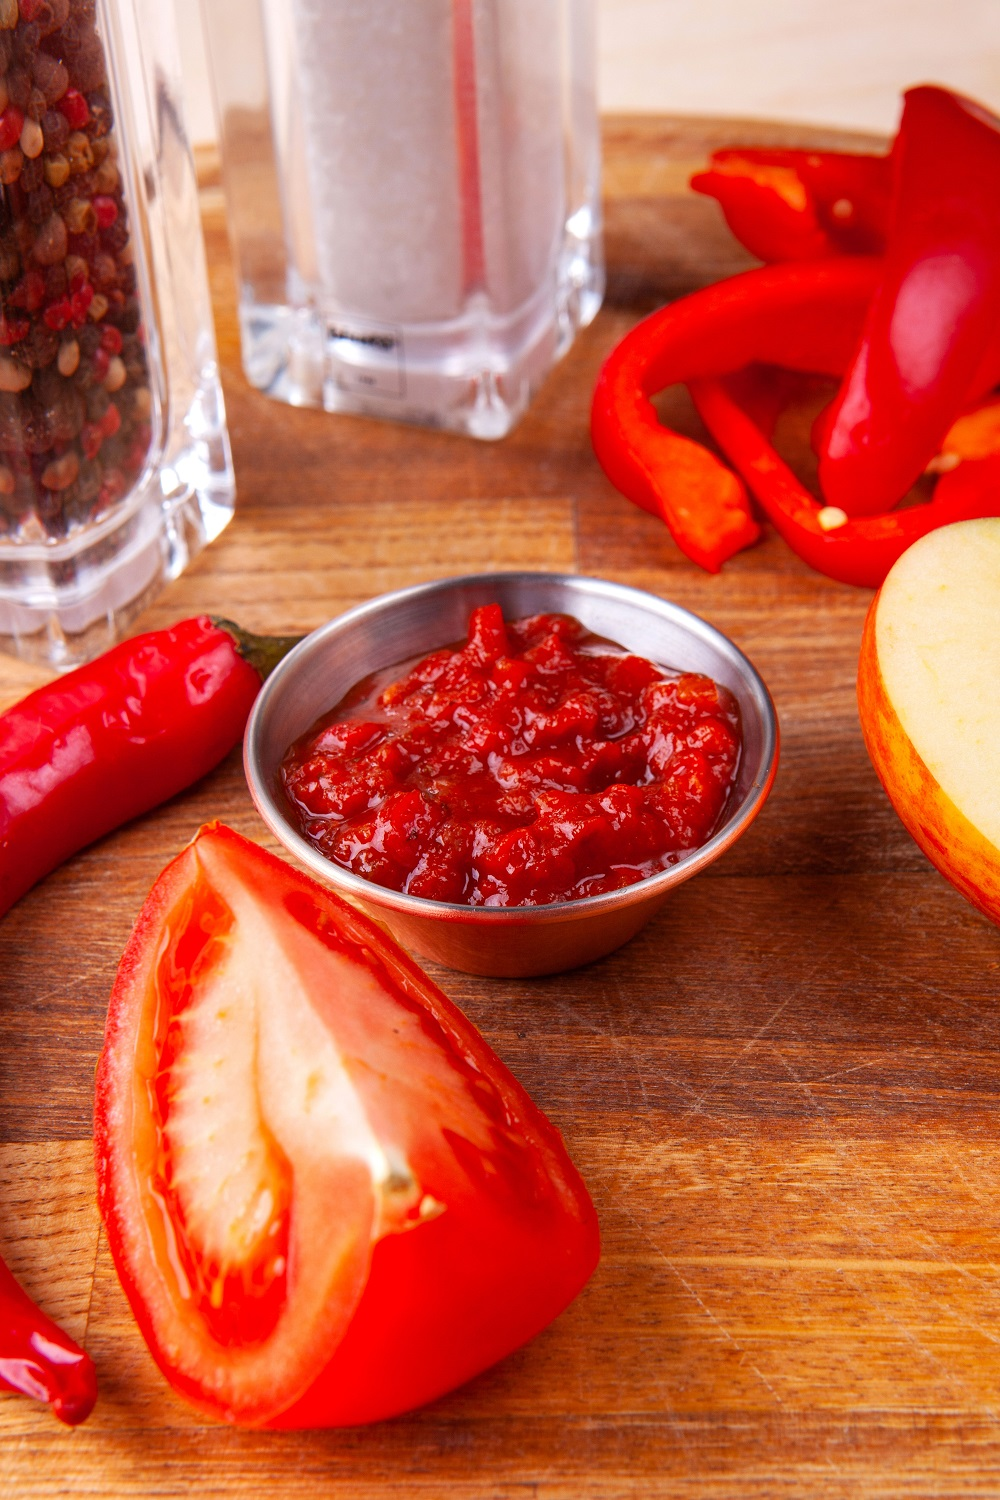 Tomatoes and Tomatoes sauce